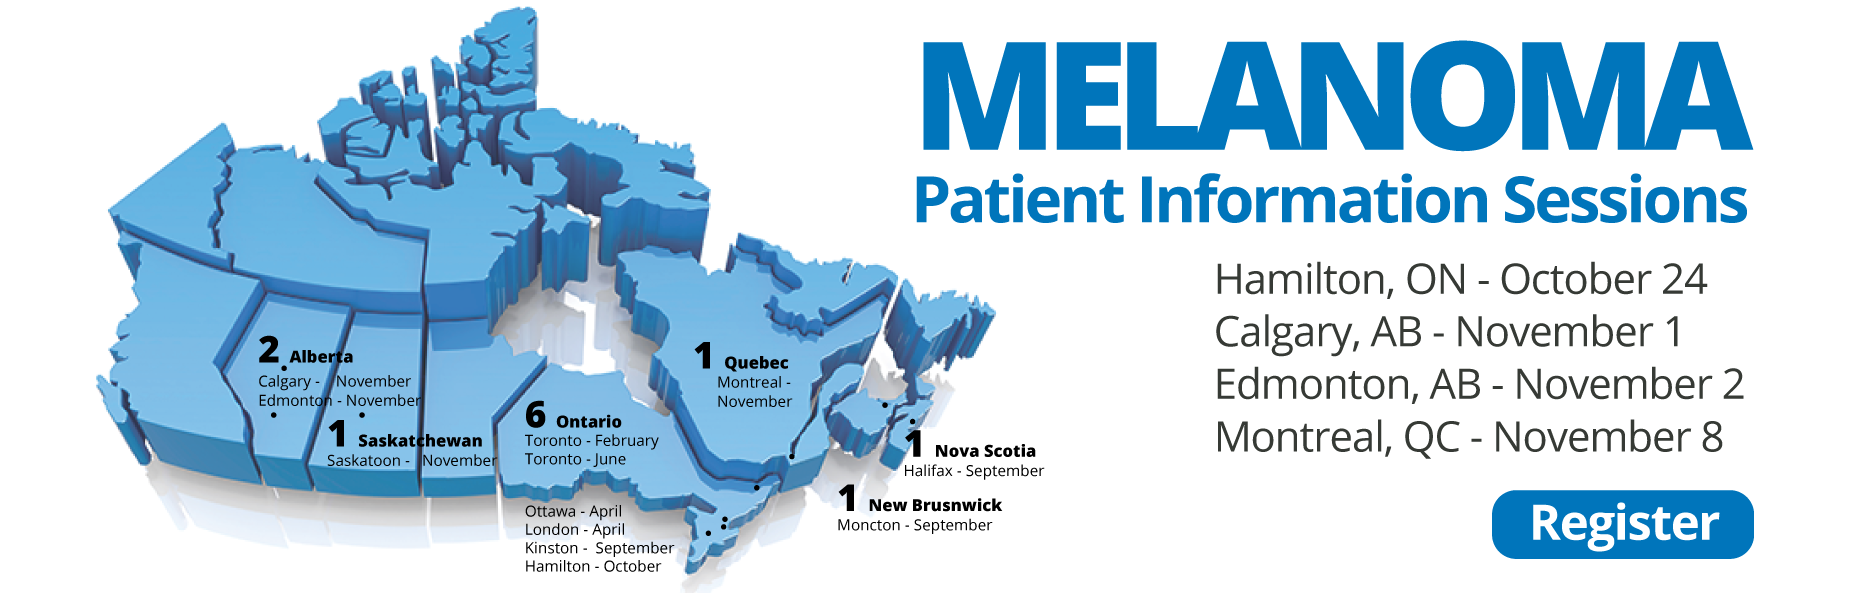 Melanoma Patient Information Session Schedule Canada